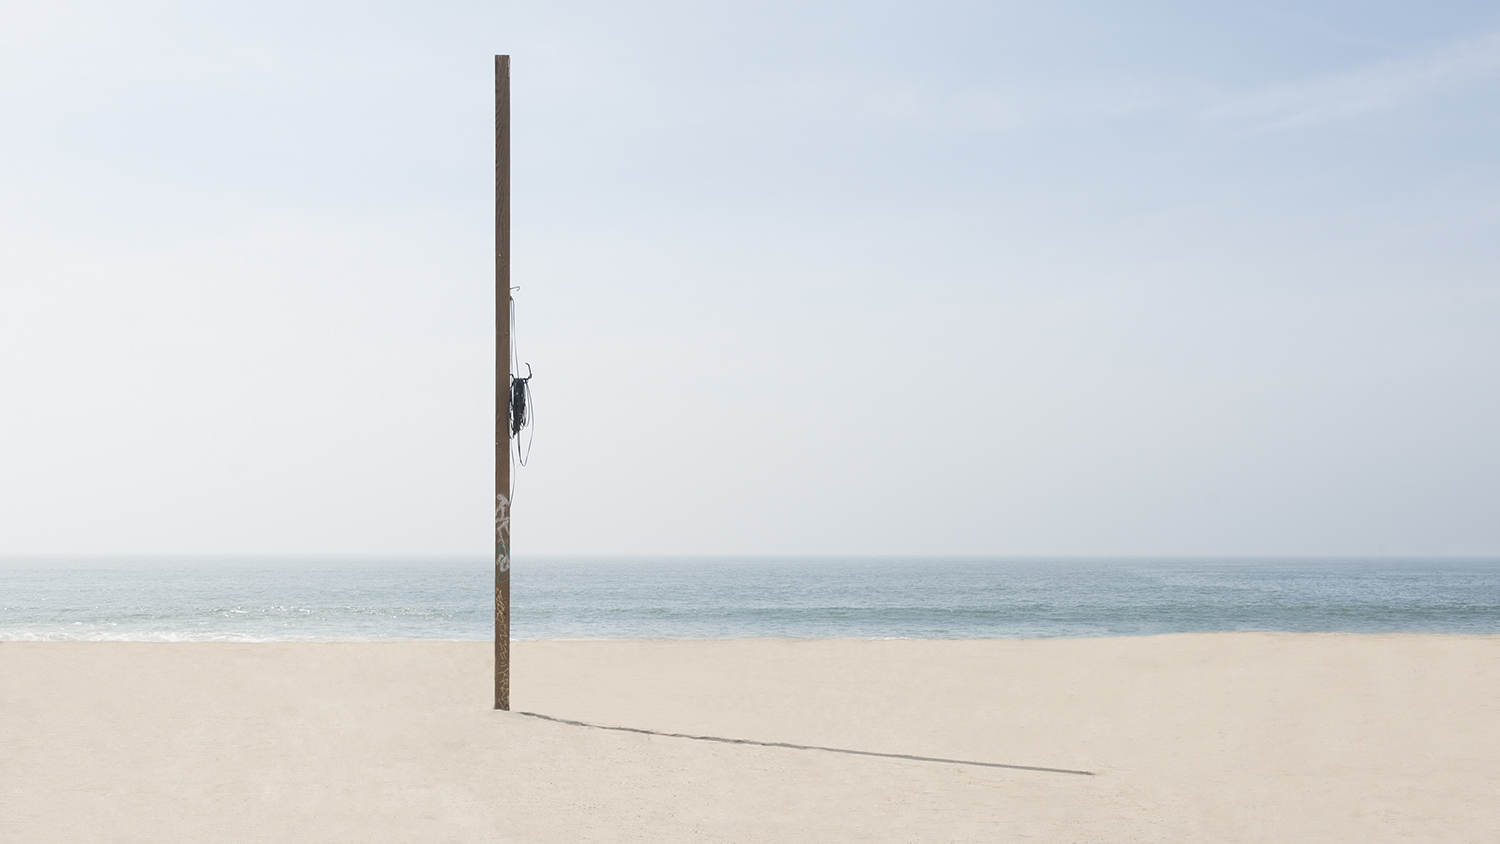 Lonely Pole